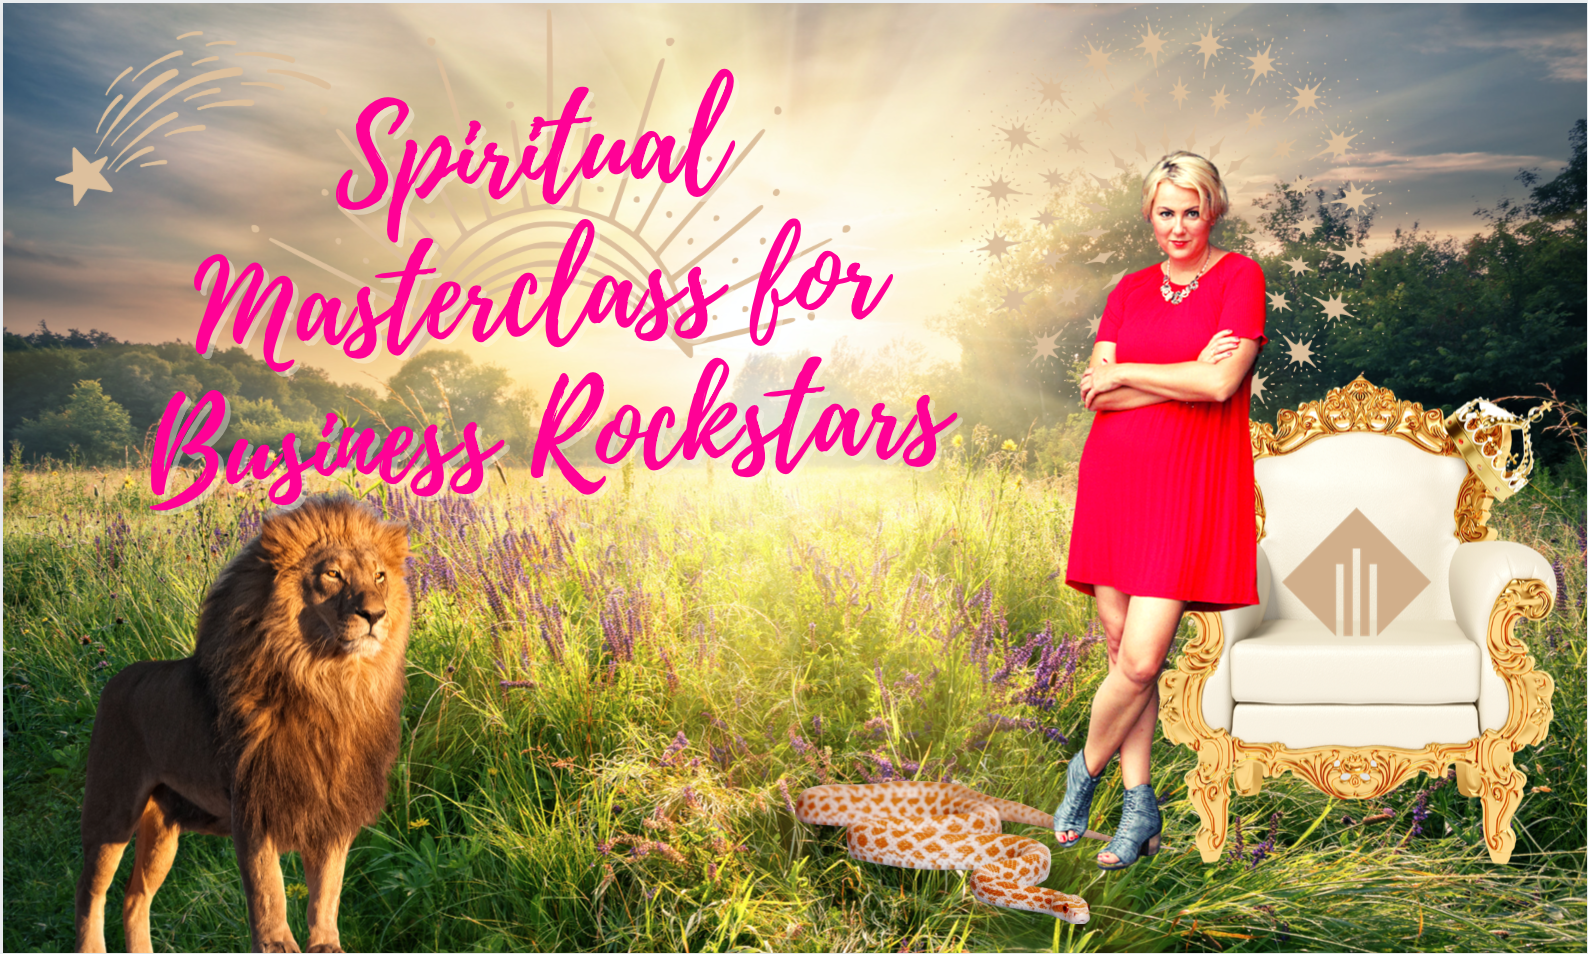 Welcome to my Spiritual Masterclass for Business Rockstars